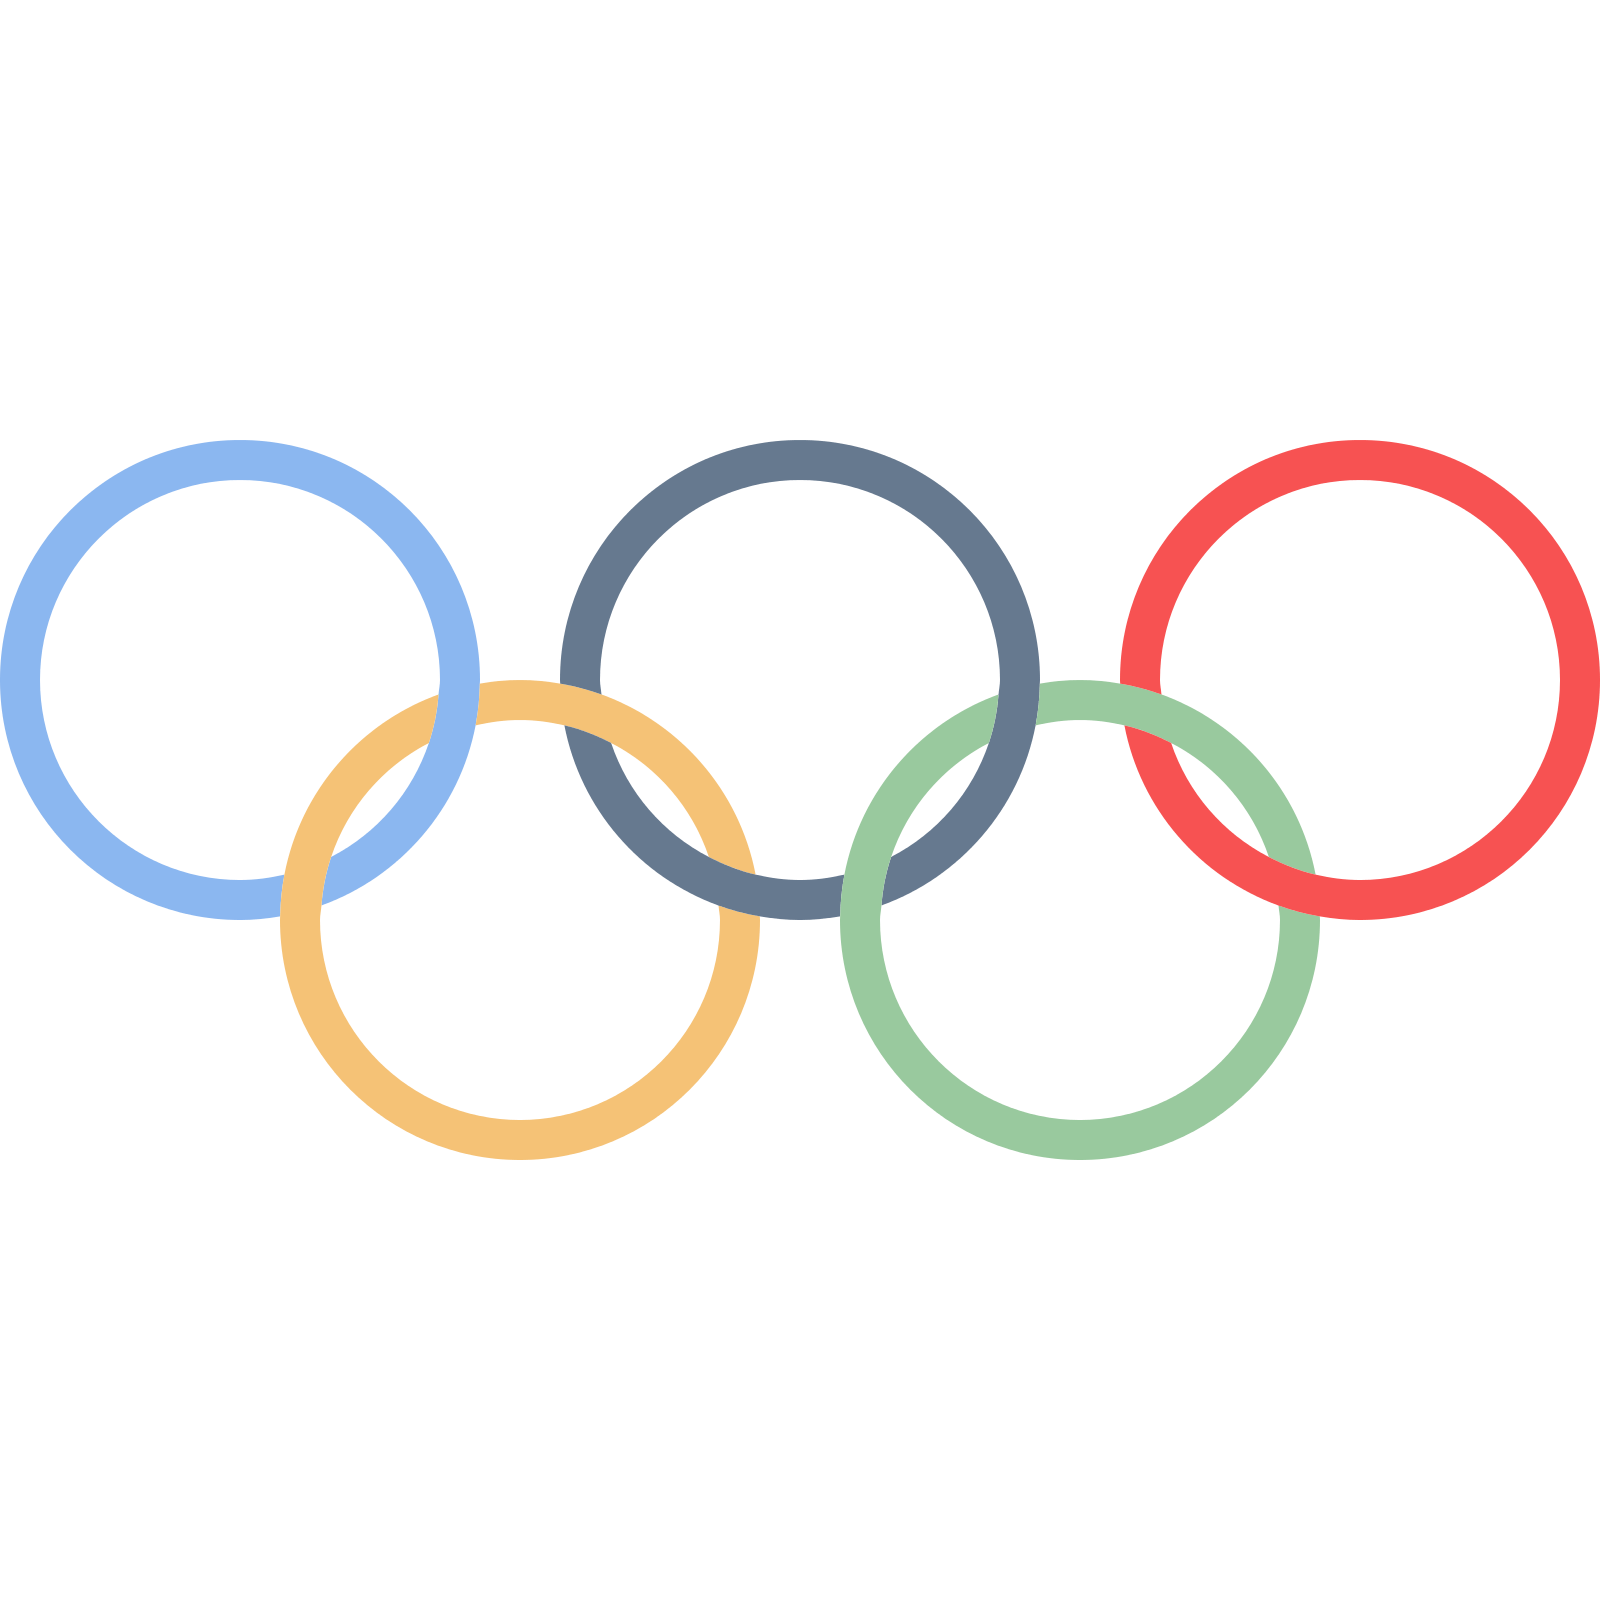 olympic rings png in high resolution web icons png rh webiconspng com usa olympic rings clipart olympic rings border clip art